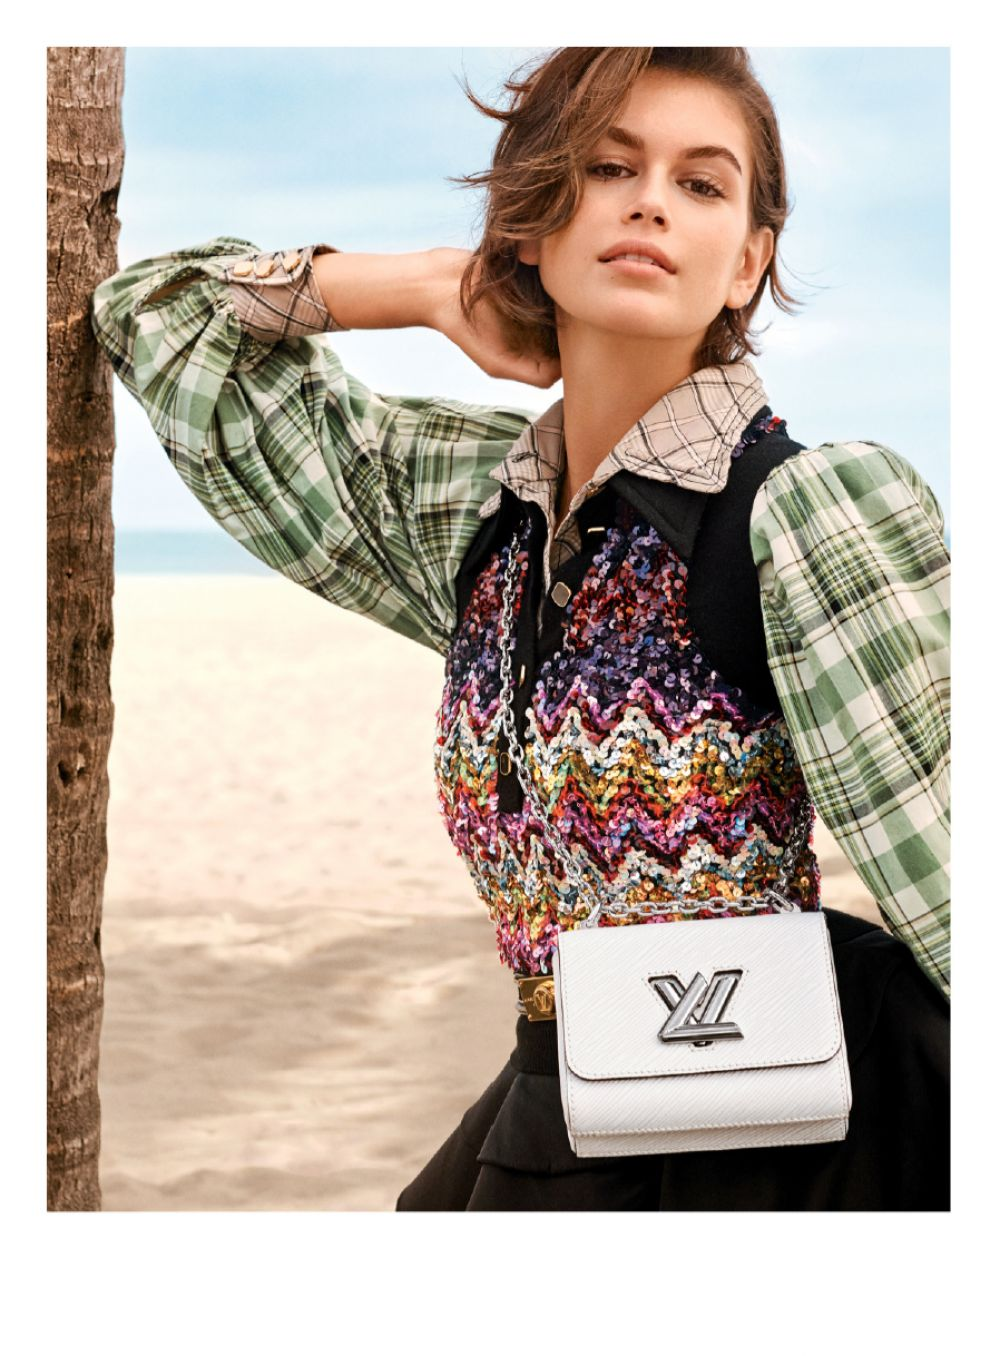 Kaia Gerber for Louis Vuitton Twist Bags for Spring 2020 Campaign 5